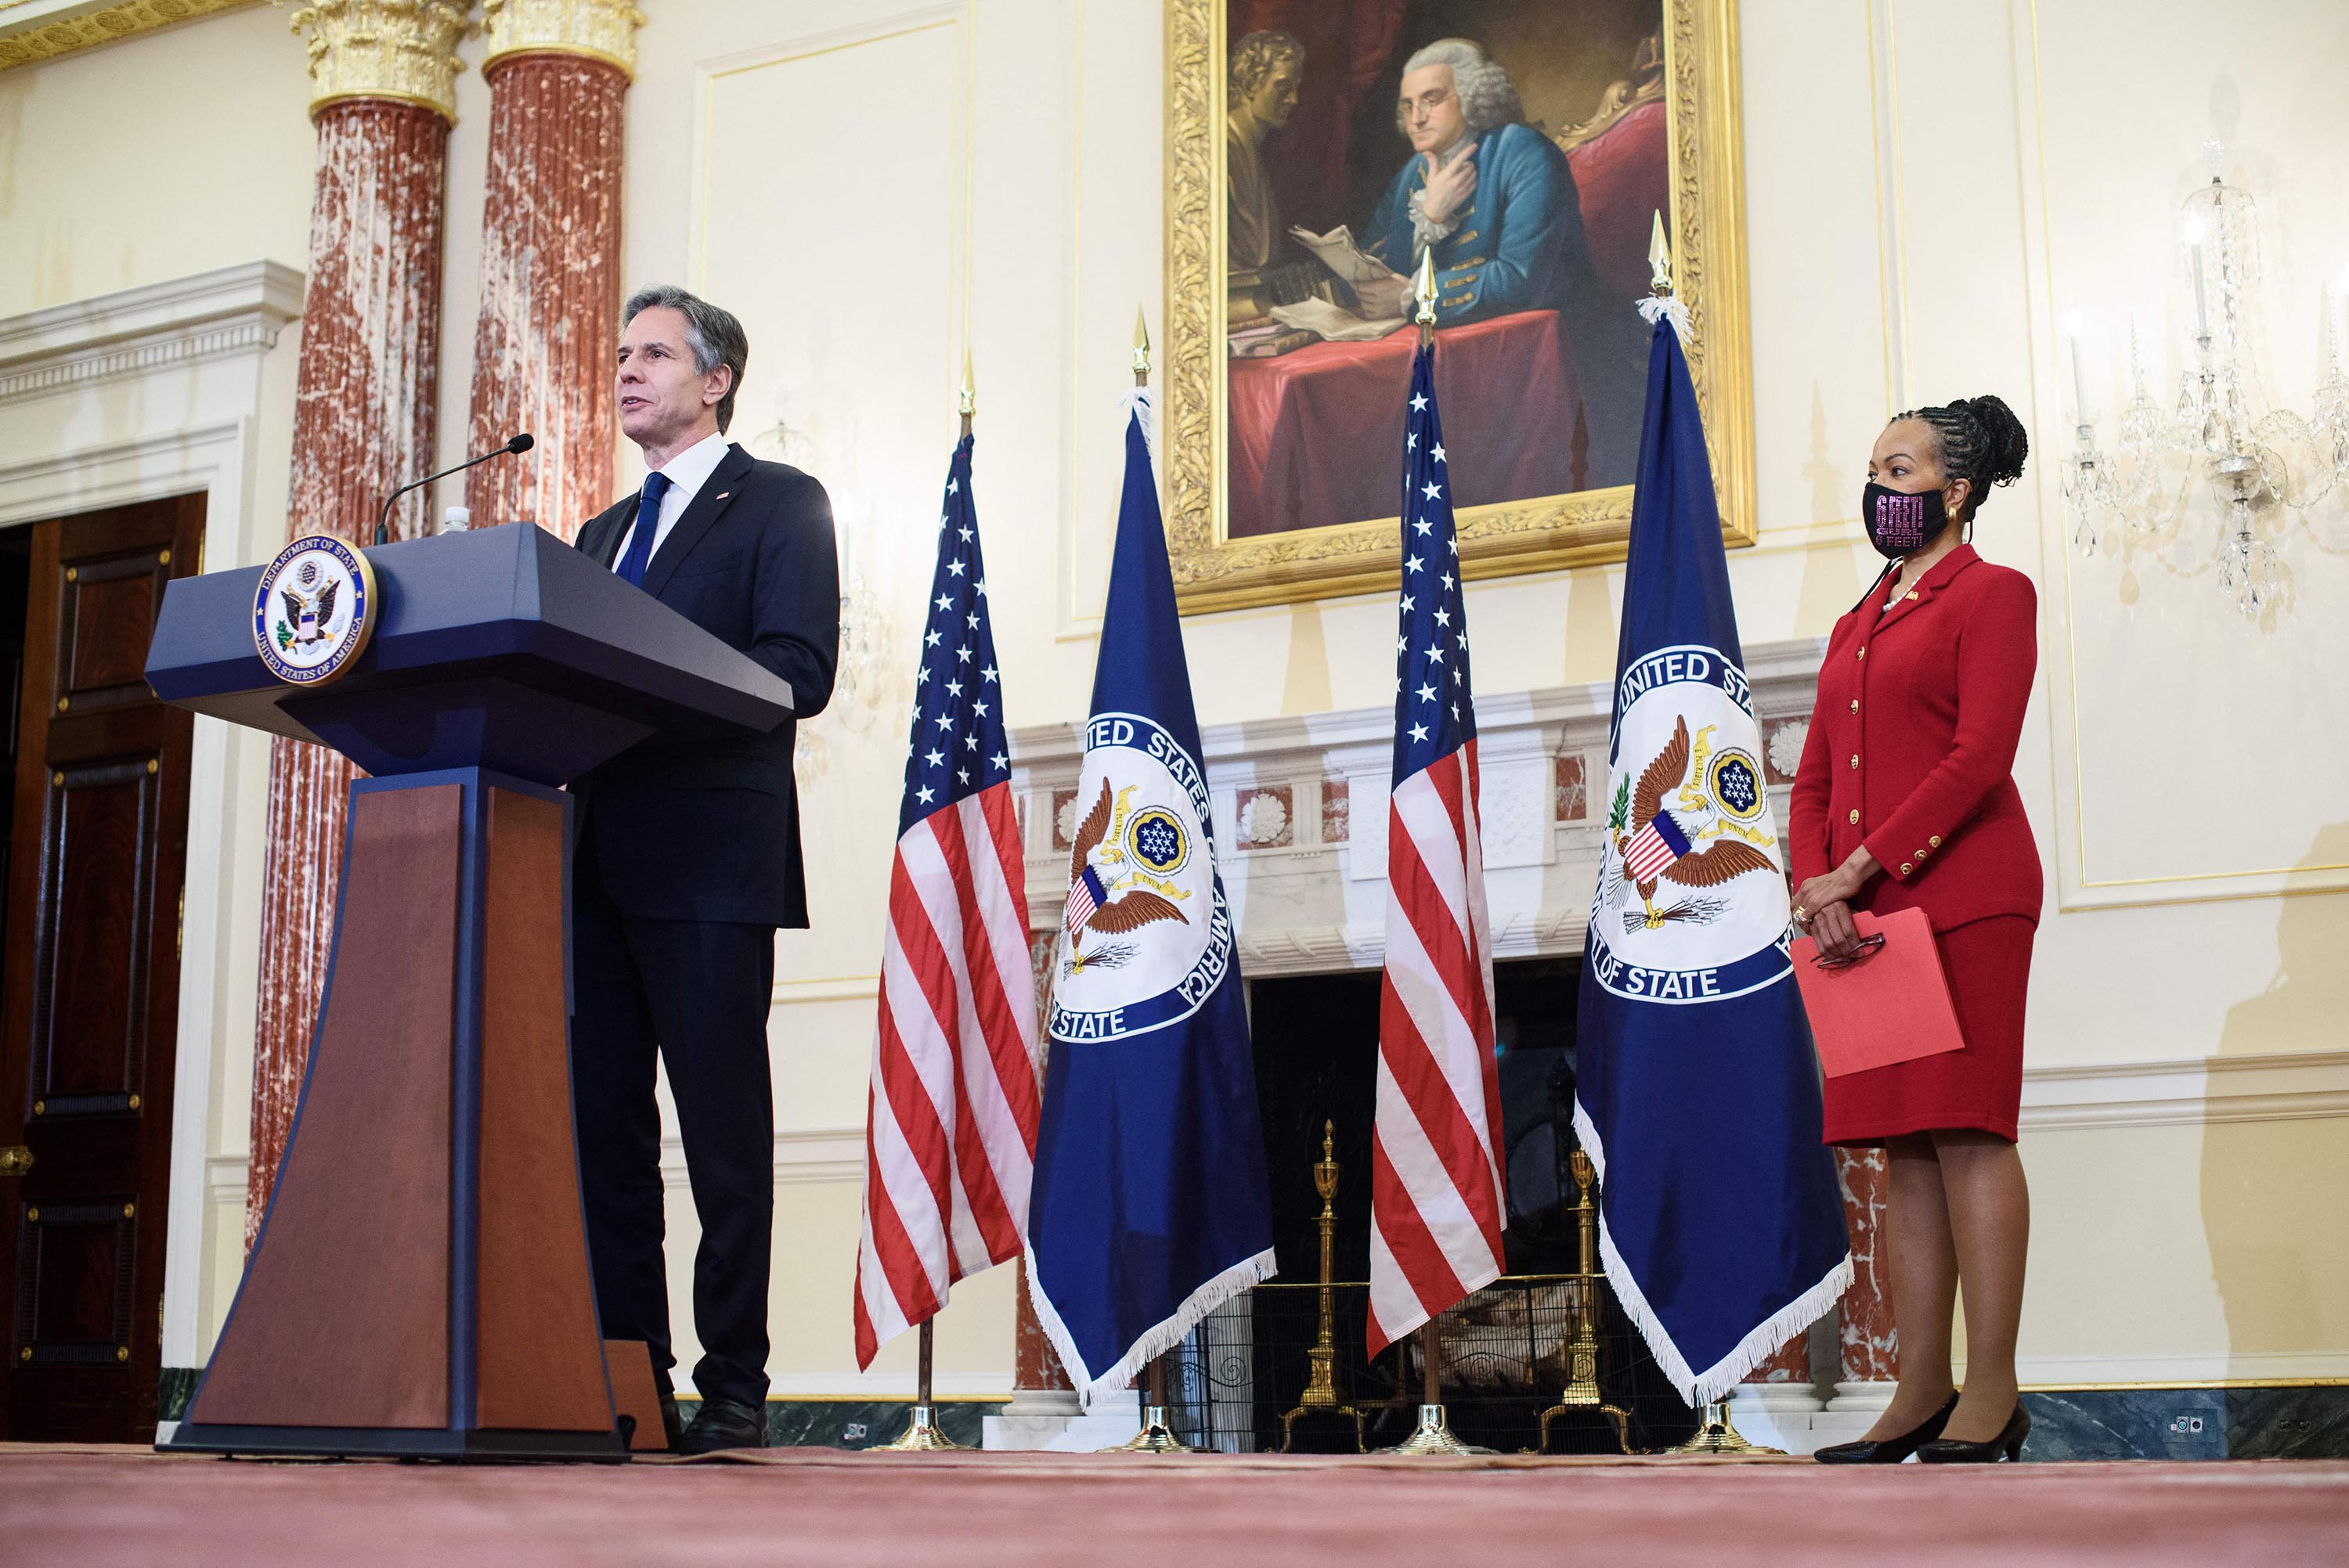 Blinken's battle to make State Department more diverse will face steep resistance, diplomats of color say